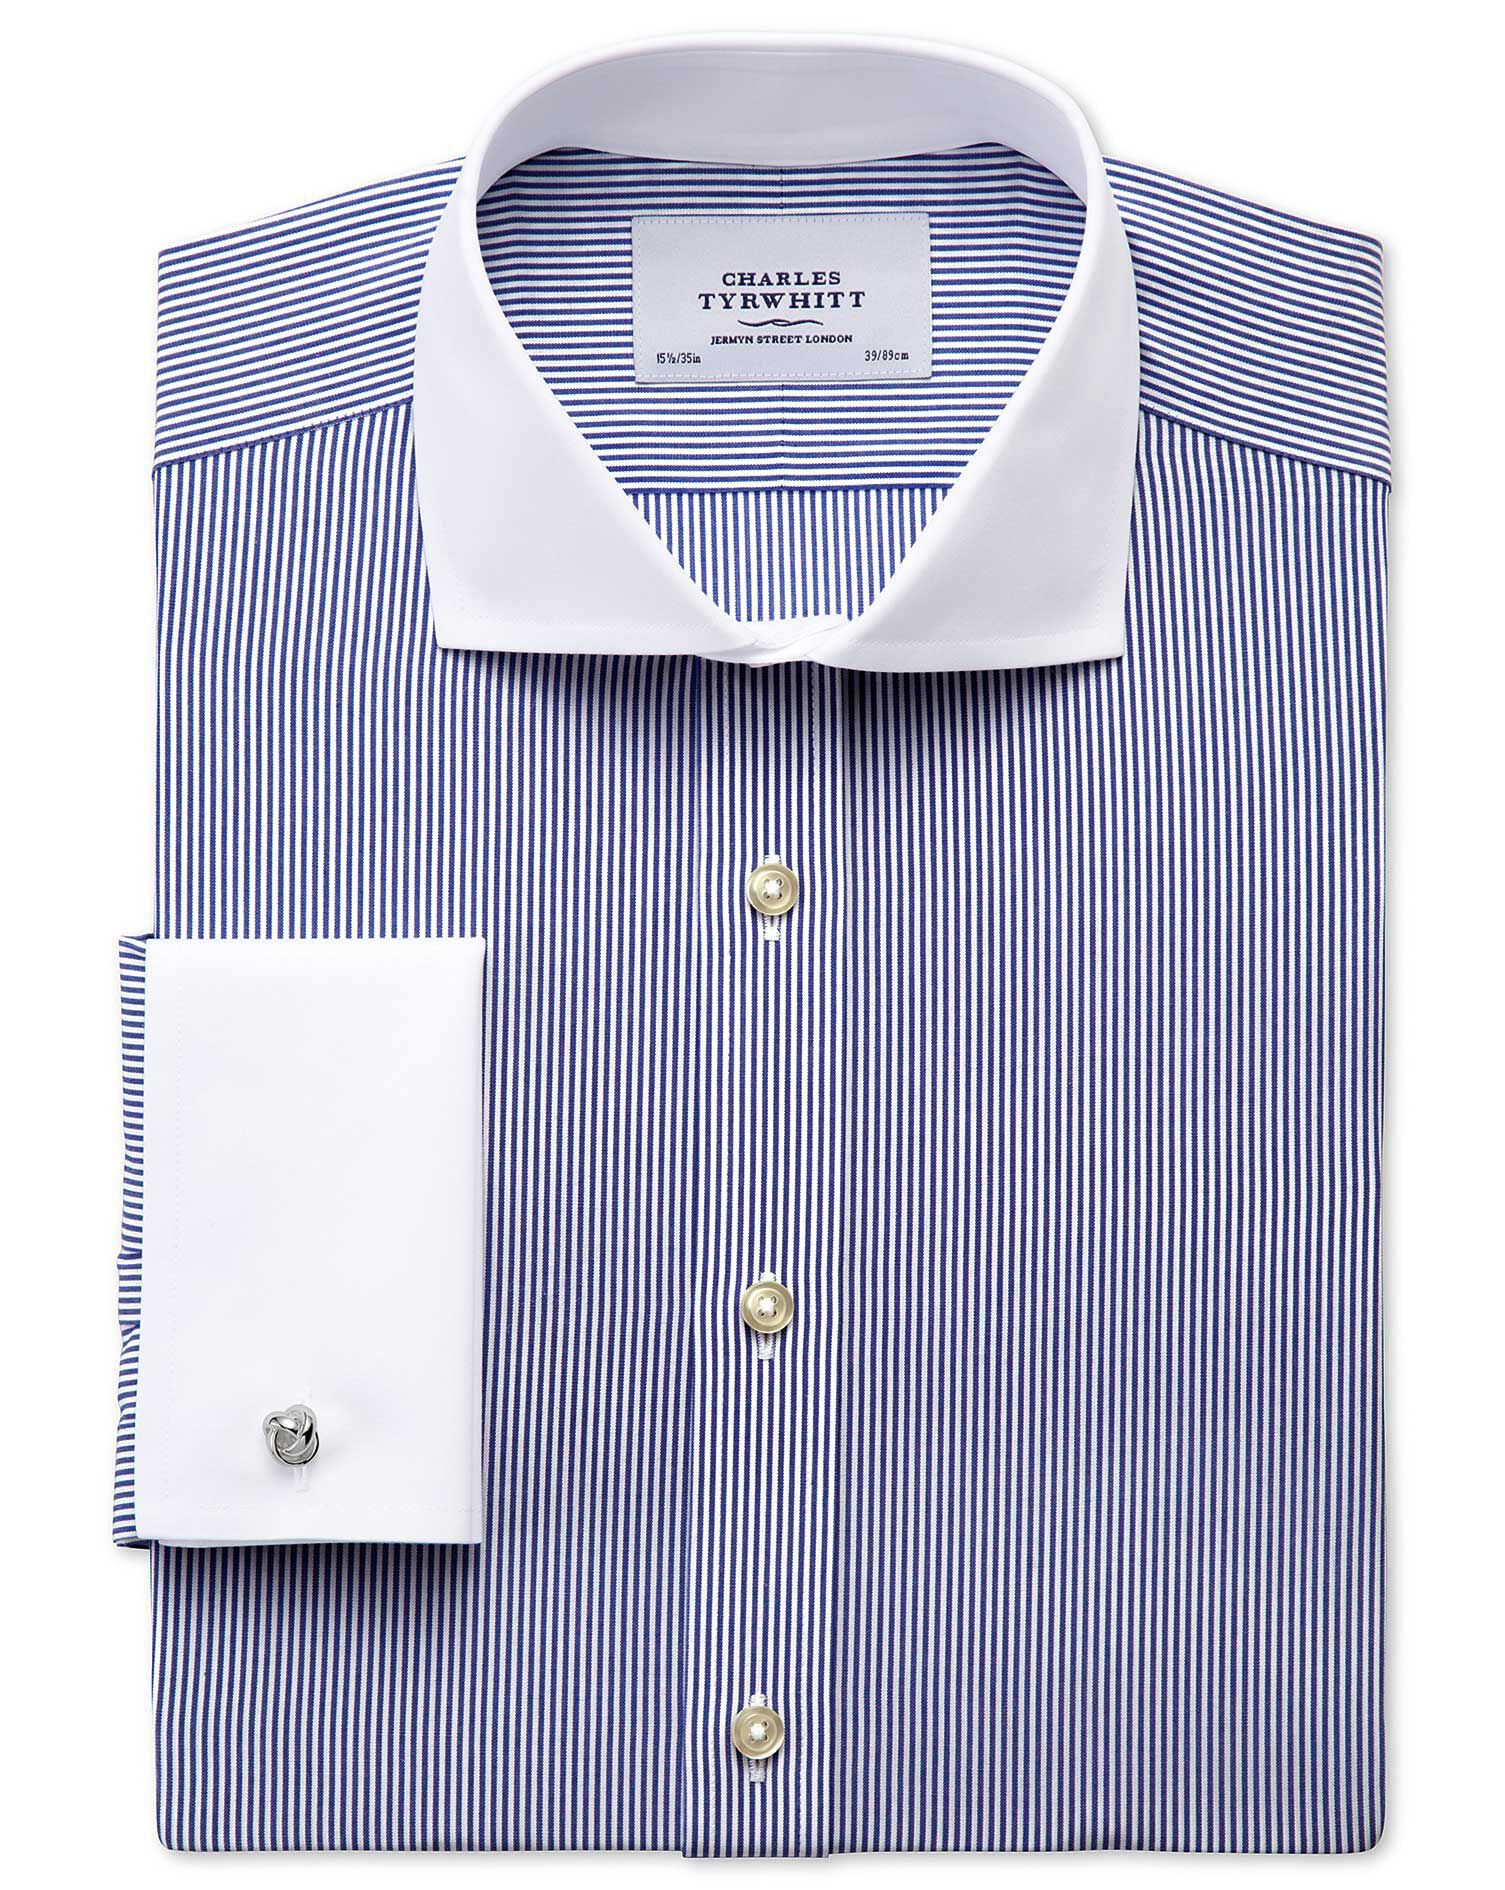 Extra Slim Fit Cutaway Collar Non-Iron Winchester Bengal Stripe Navy Cotton Formal Shirt Double Cuff